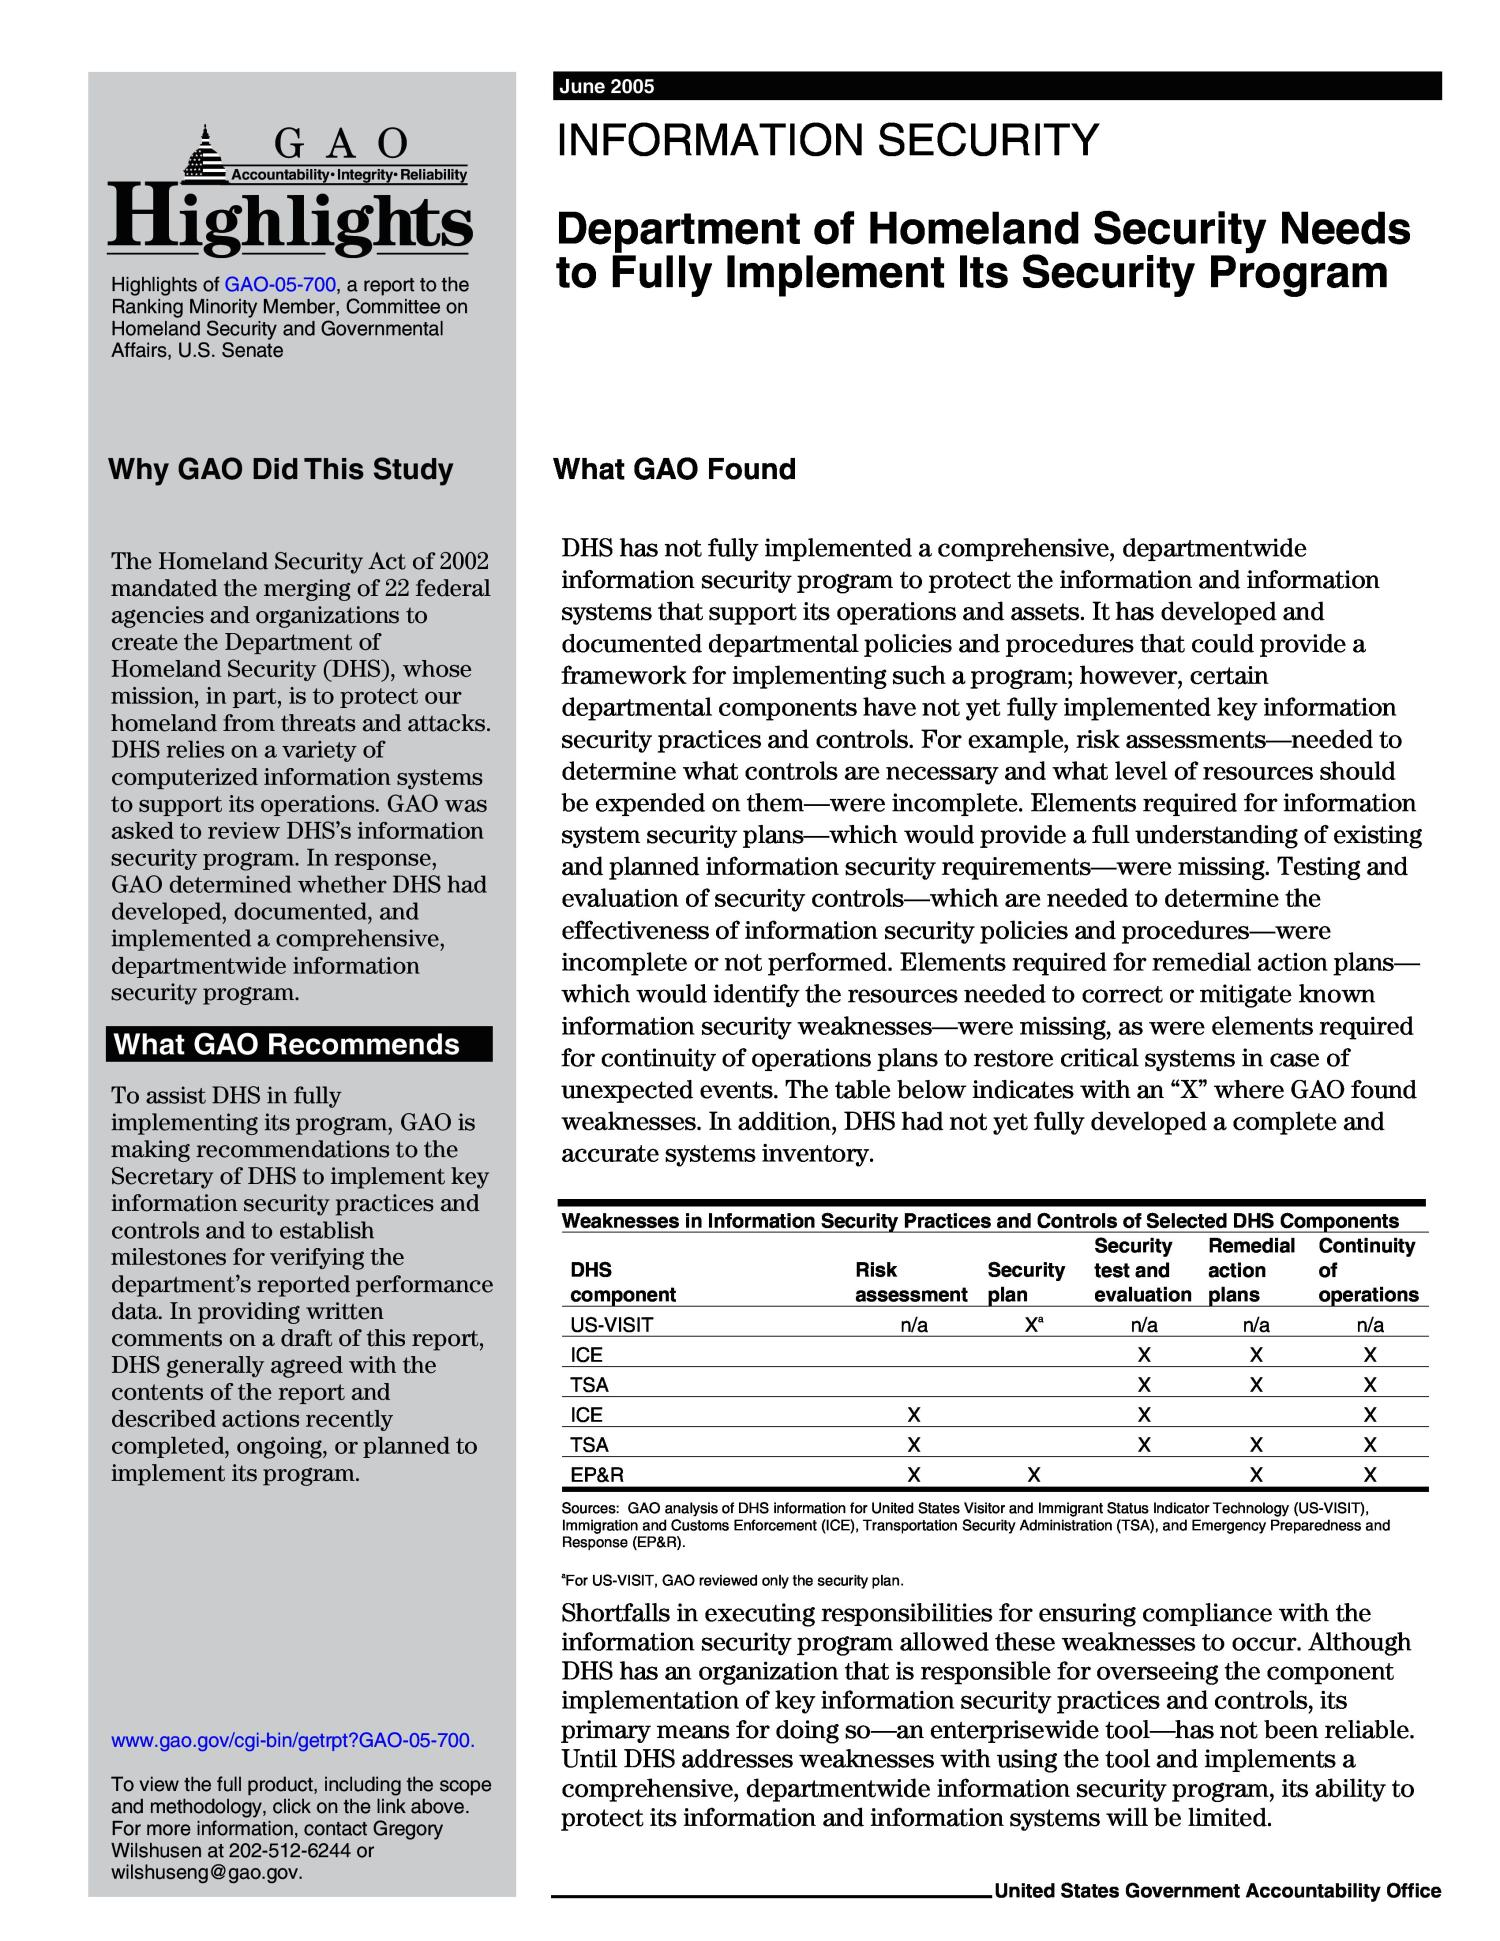 Information Security: Department of Homeland Security Needs to Fully Implement Its Security Program                                                                                                      [Sequence #]: 2 of 36